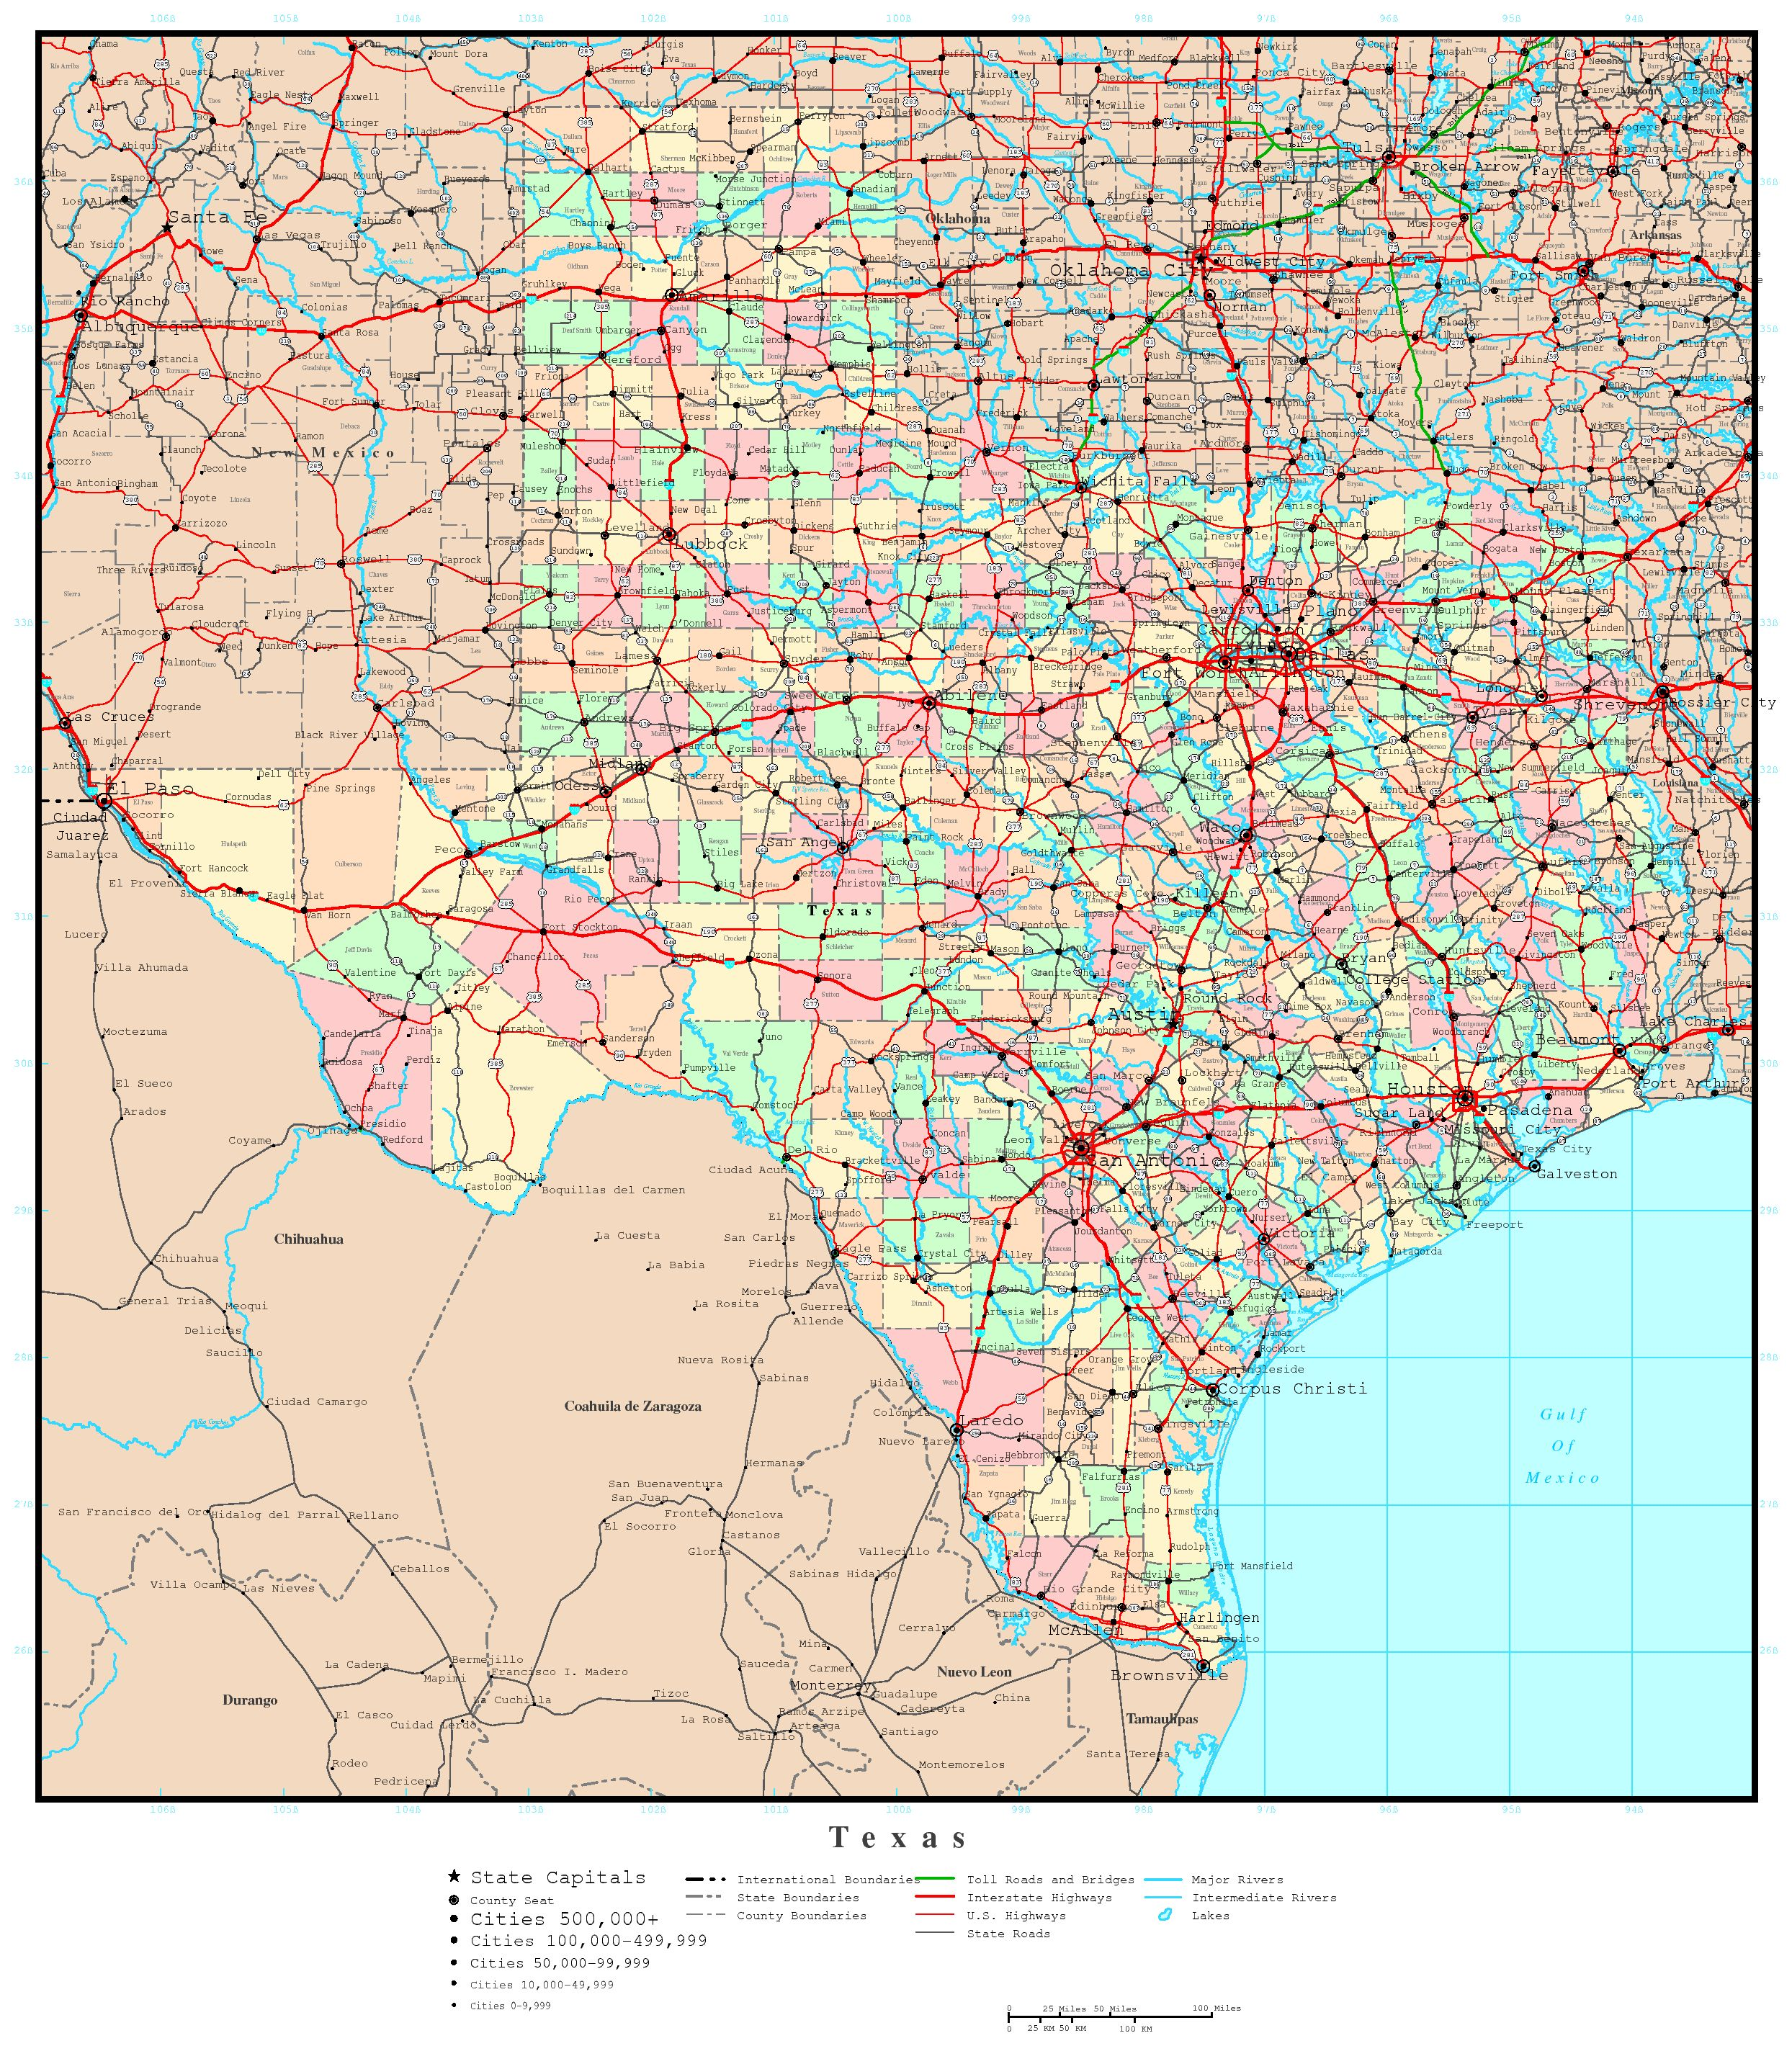 Texas Political Map - Trxas map